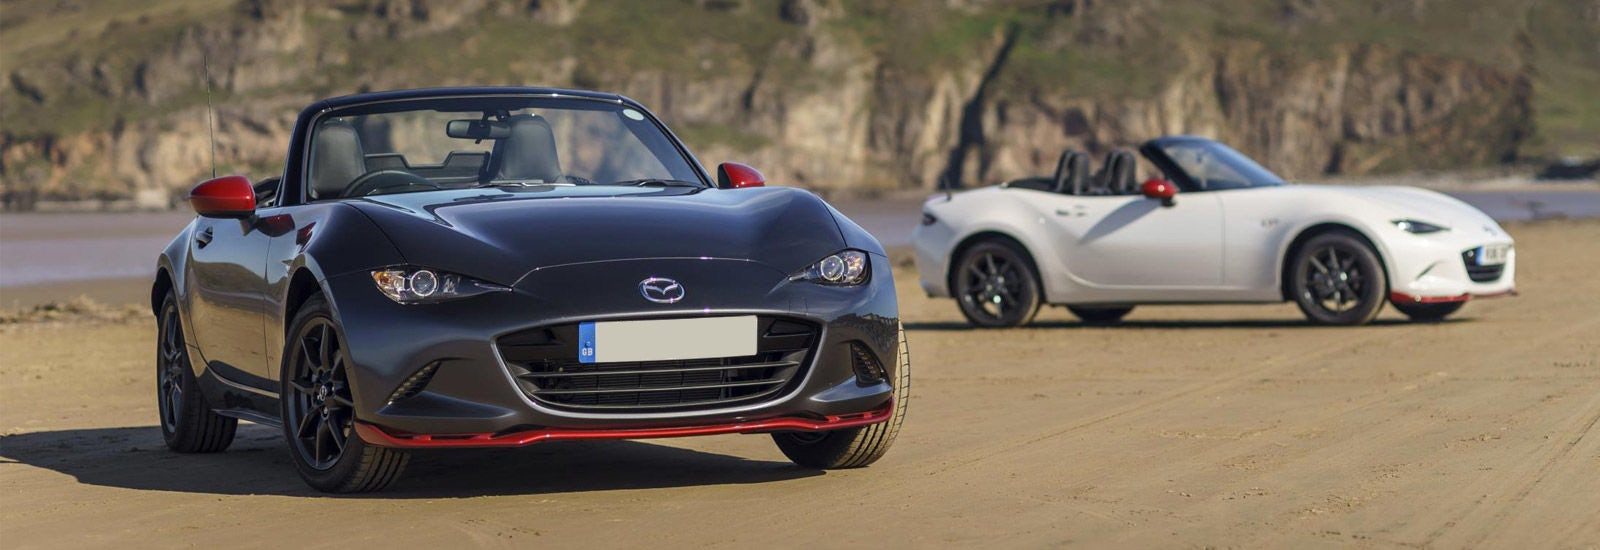 2008 10best cars 10best cars page 2 car and driver - 2 Mazda Mx 5